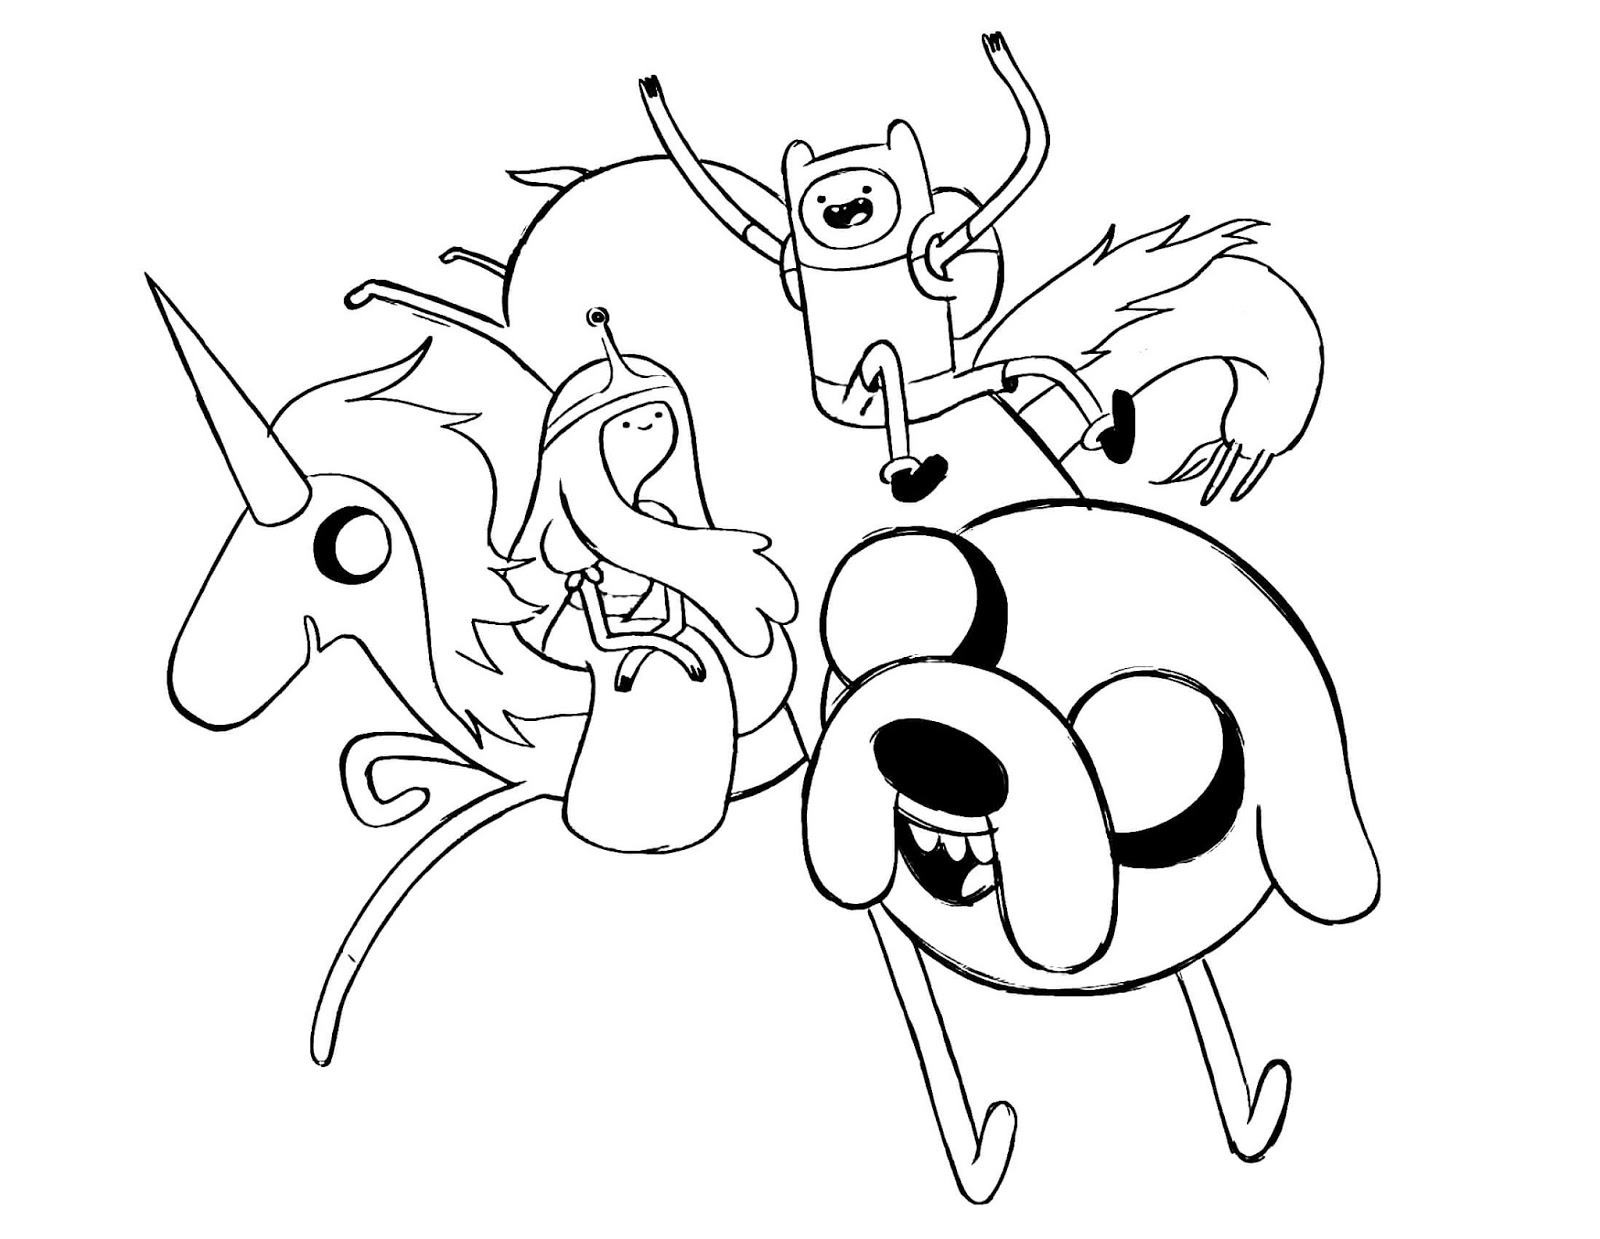 cartoon network adventure time with finn and jake coloring pages